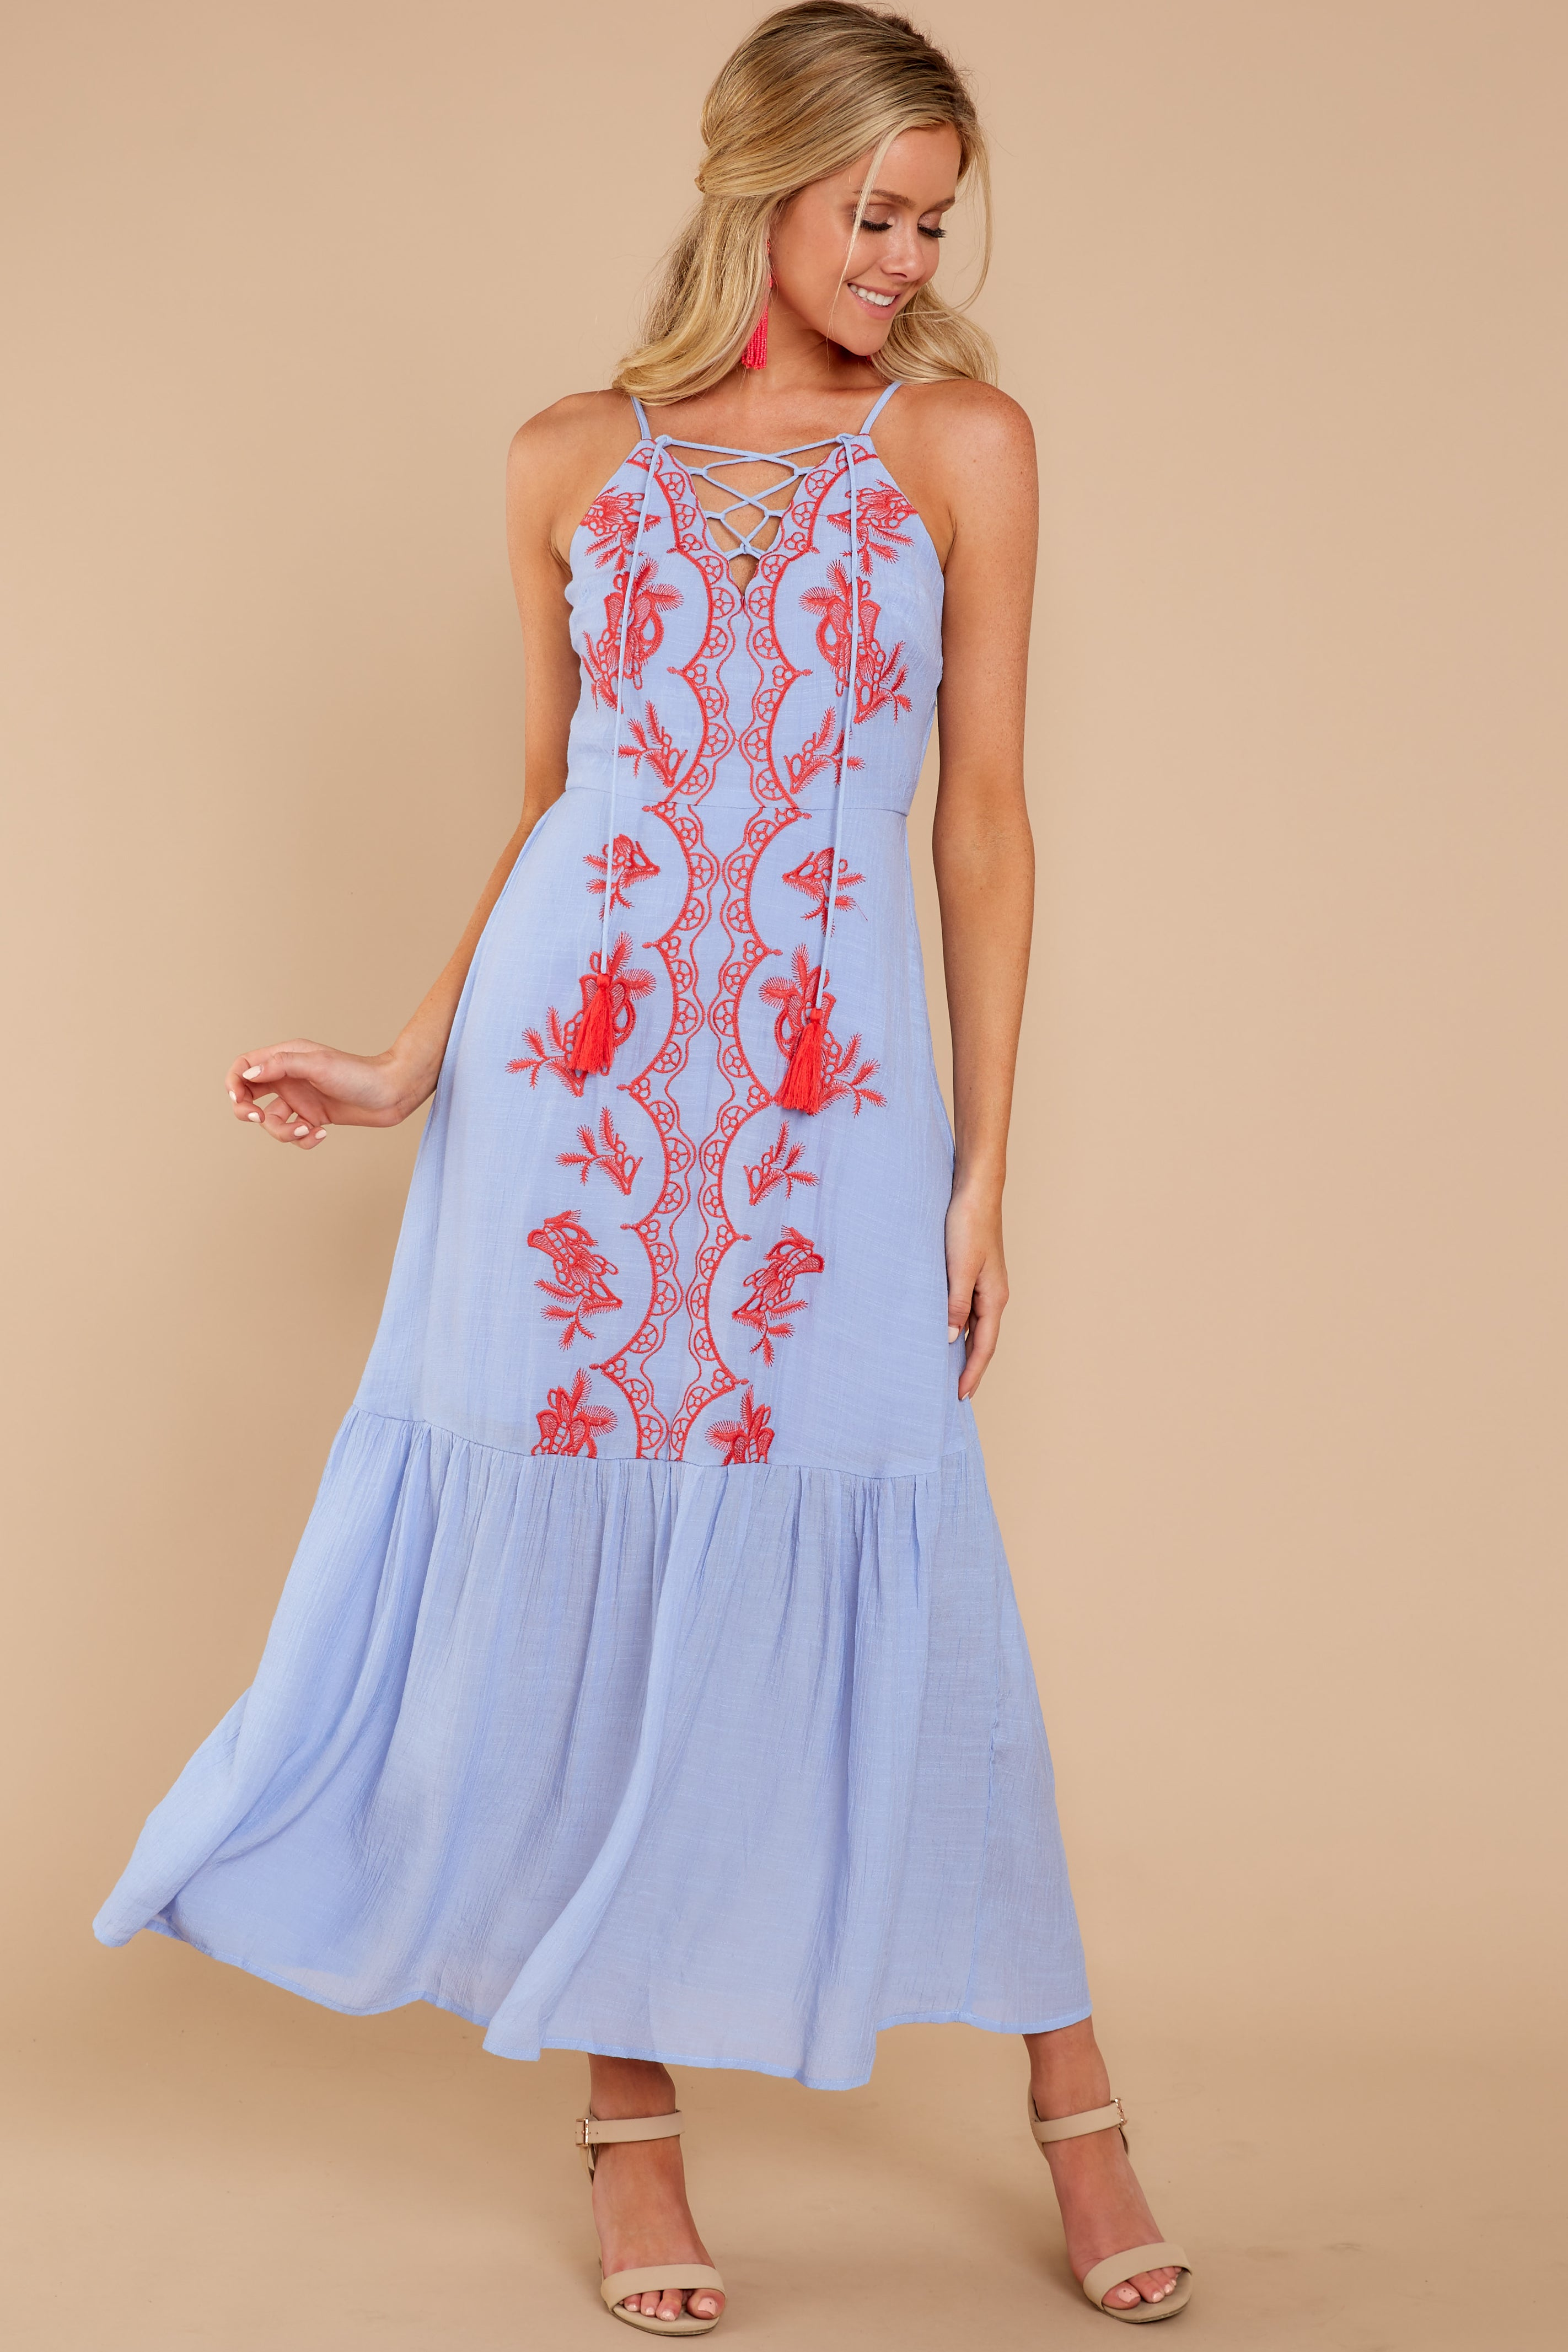 0d6315cab6b Chic Light Blue Embroidered Maxi Dress - Adorable Embroidered Dress ...